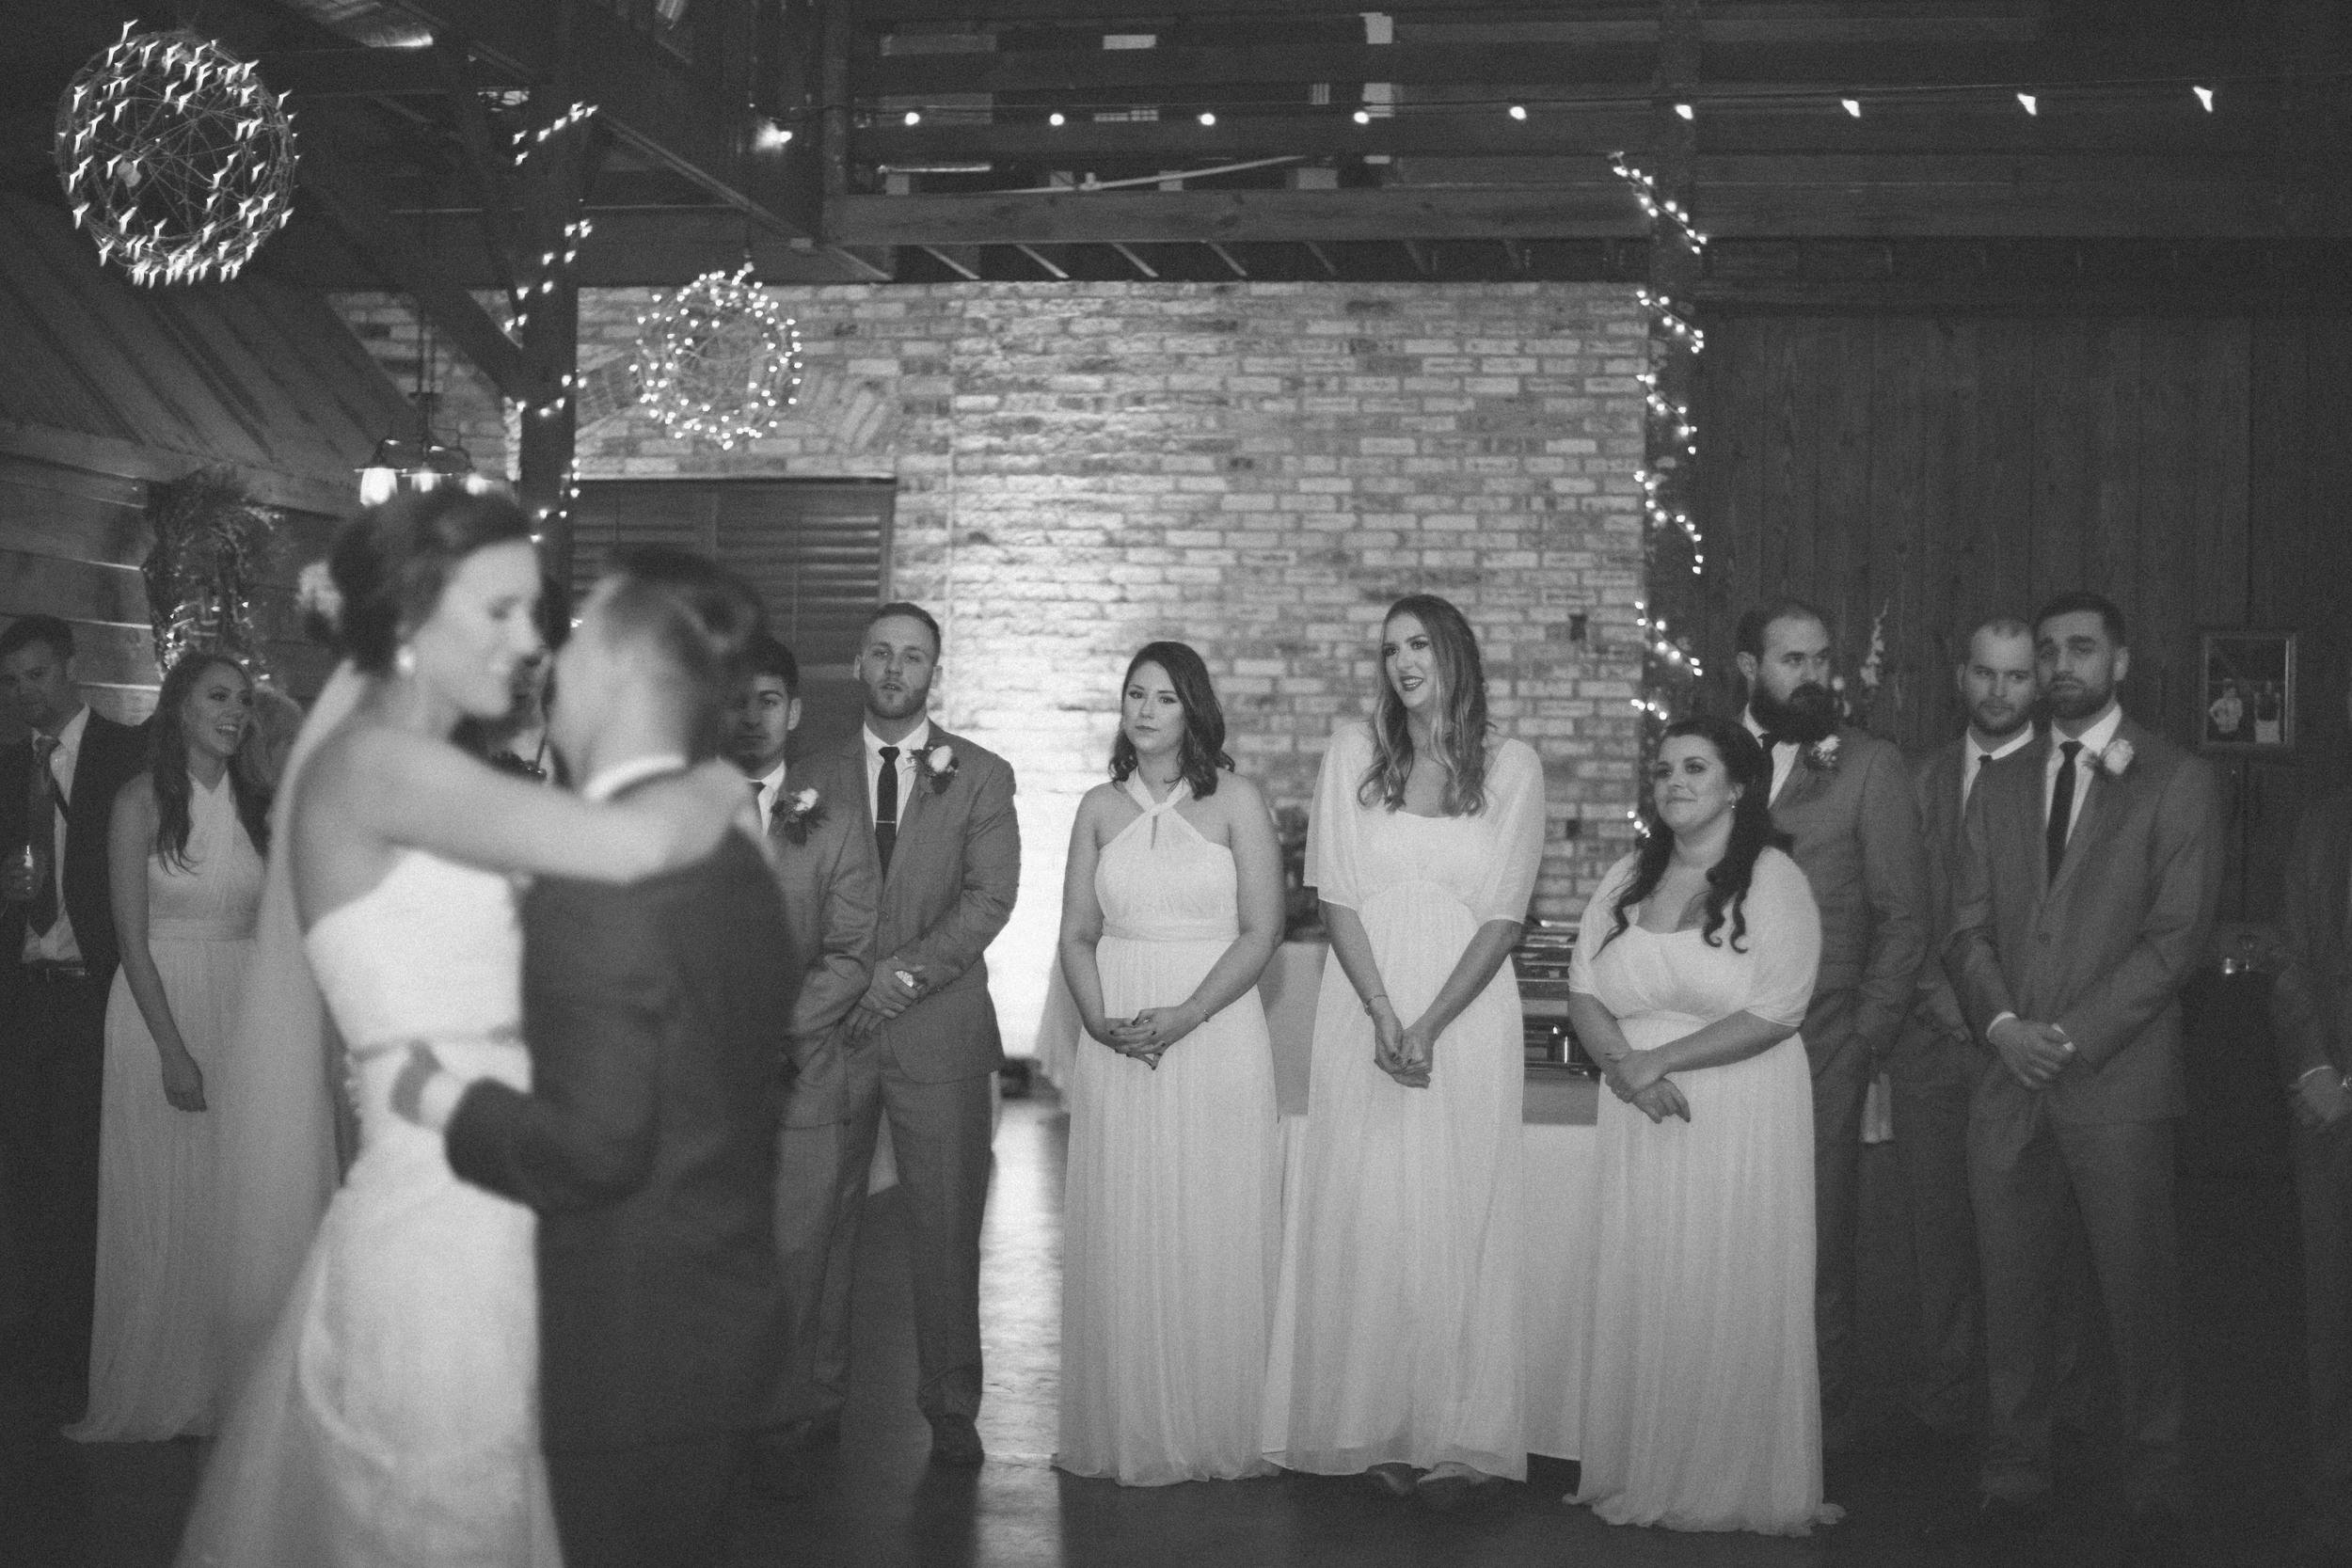 ofRen_louisianaweddings097.JPG